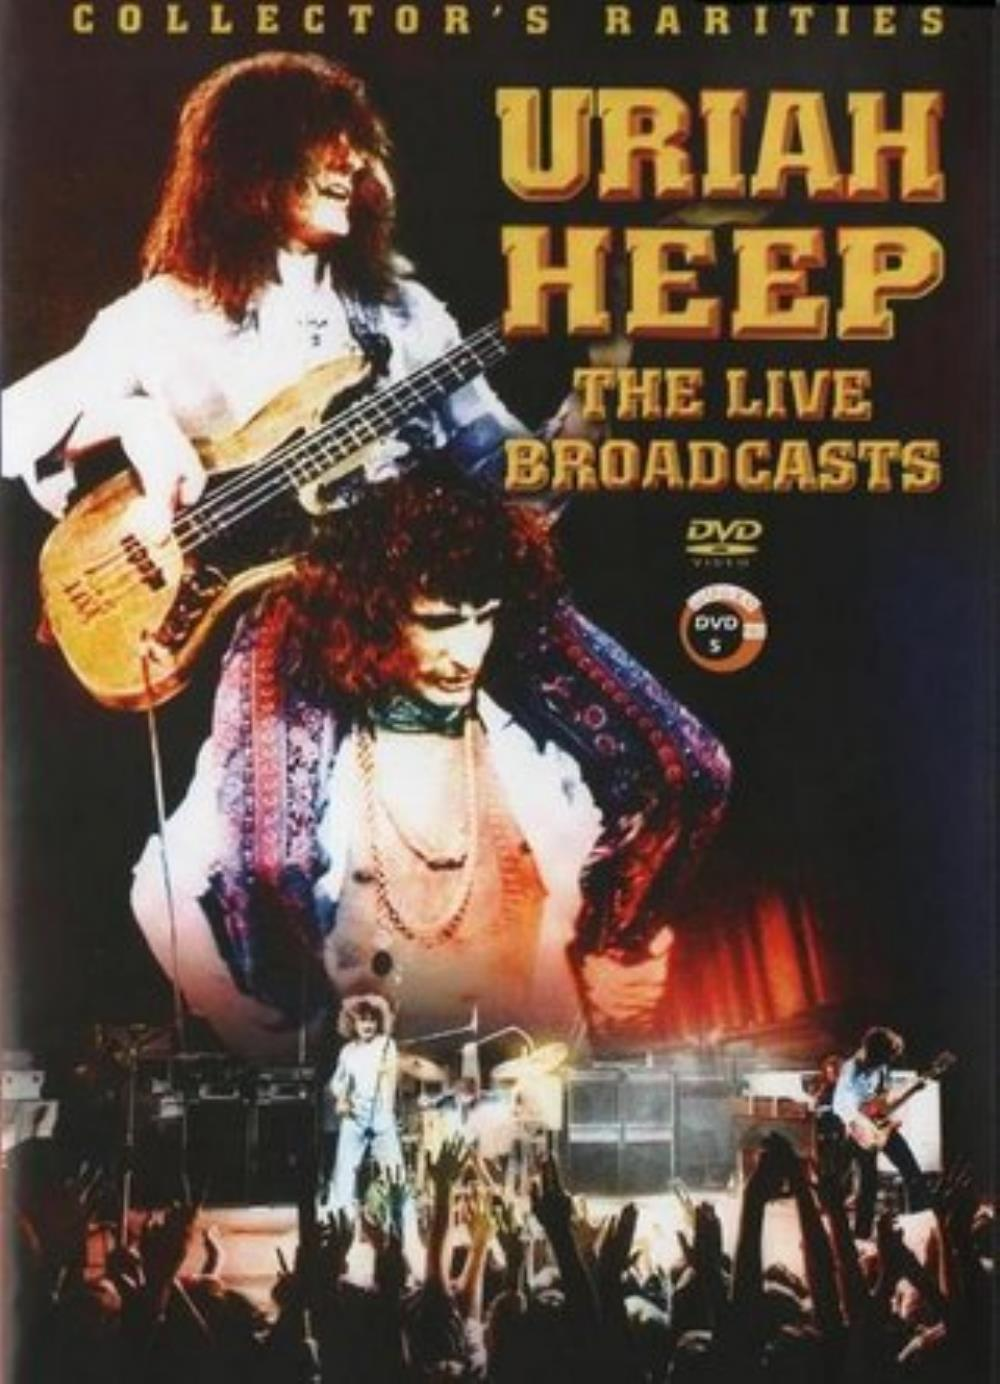 Uriah Heep - The Live Broadcasts DVD (album) cover